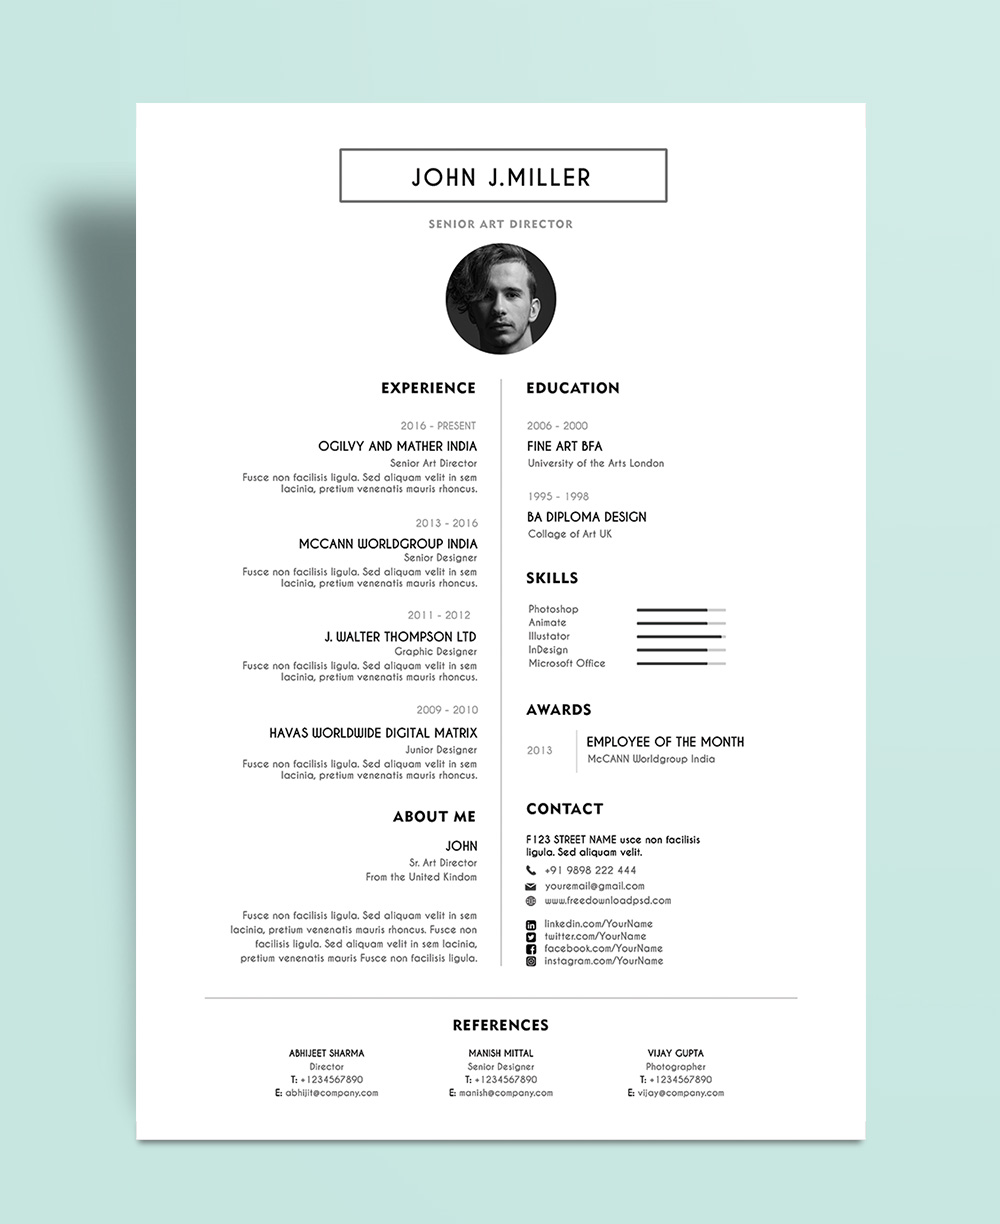 Layout For Resume Template Resume Outline Layout Blank Template Outlines Free Simple And Minimal Layout Resume Cv Design Template